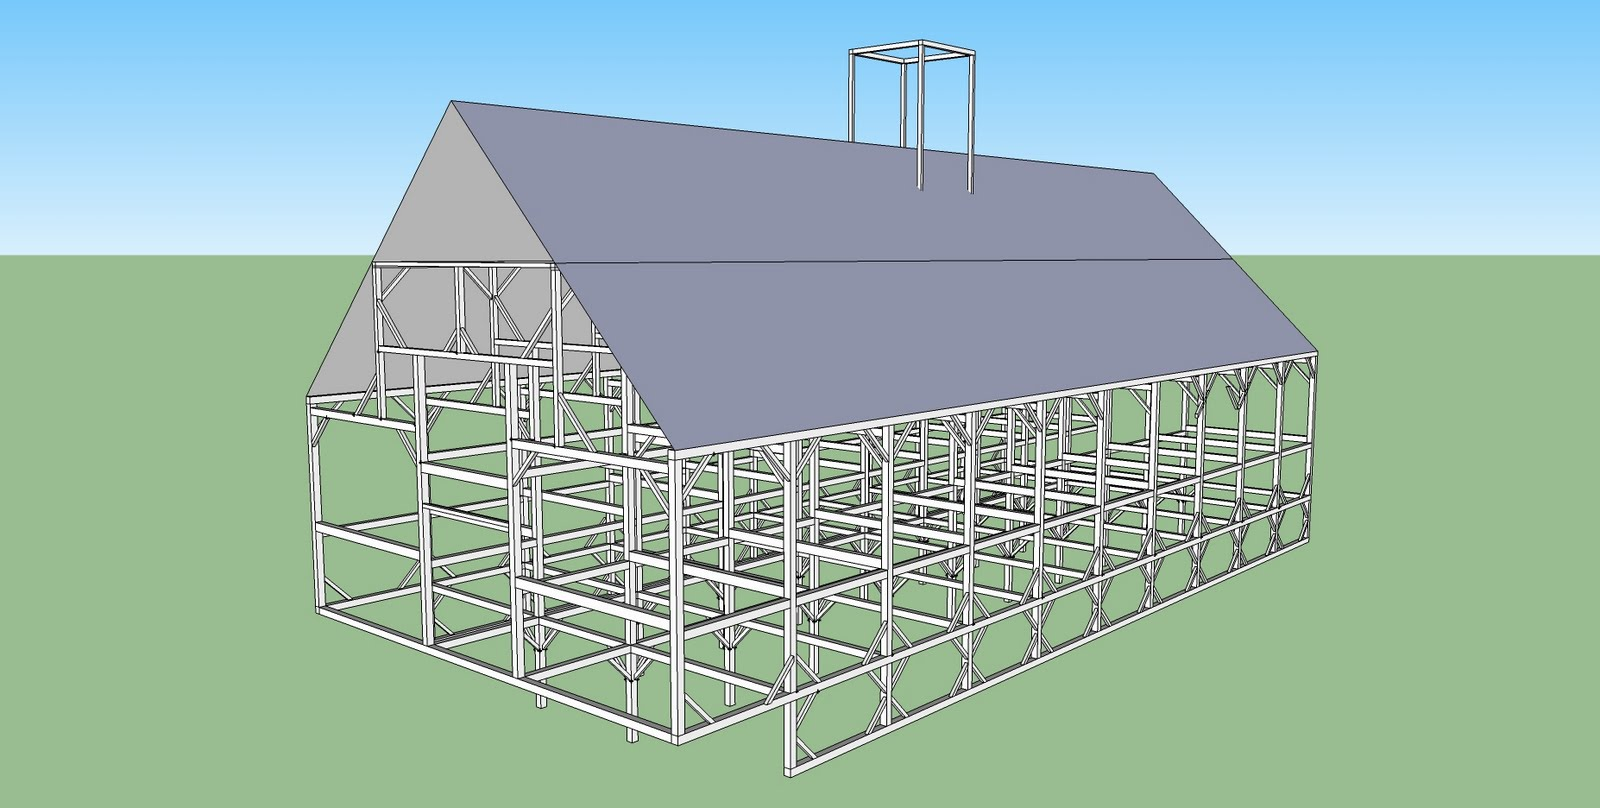 Cabot aisle barn with sheathed roof.